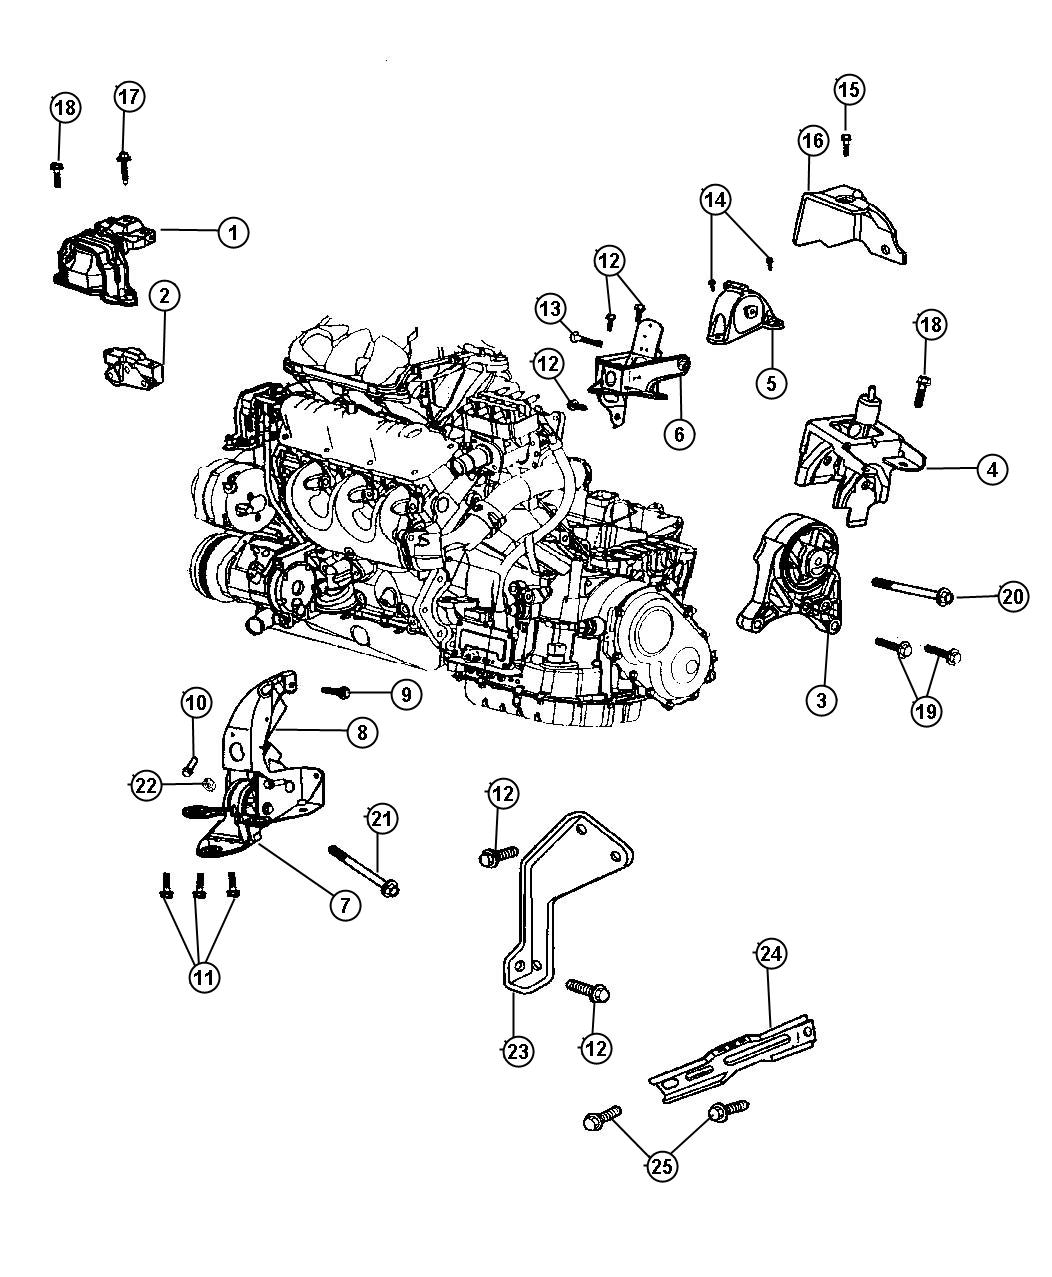 2003 chrysler town & country support. engine mount. rail ... chrysler 3 8l engine diagram #8